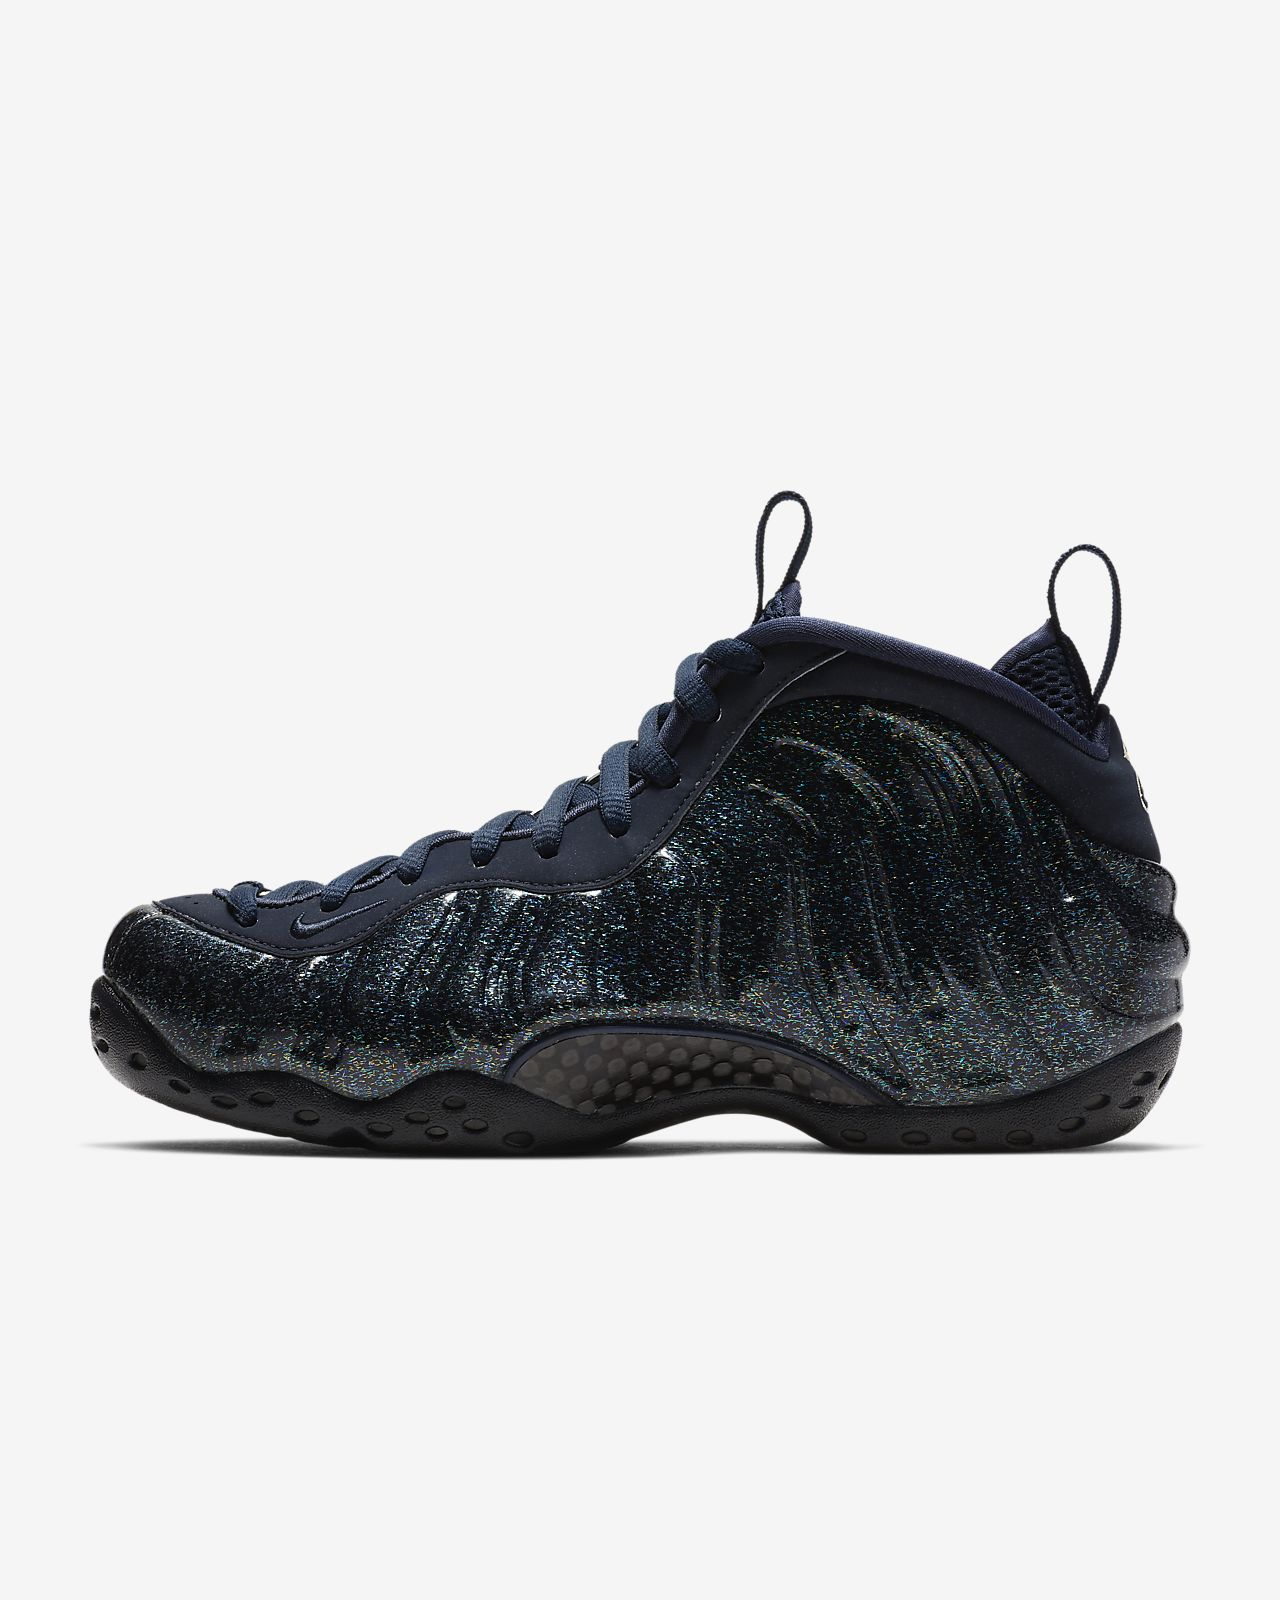 4eb79369fcb Nike Air Foamposite 1 Women s Shoe. Nike.com